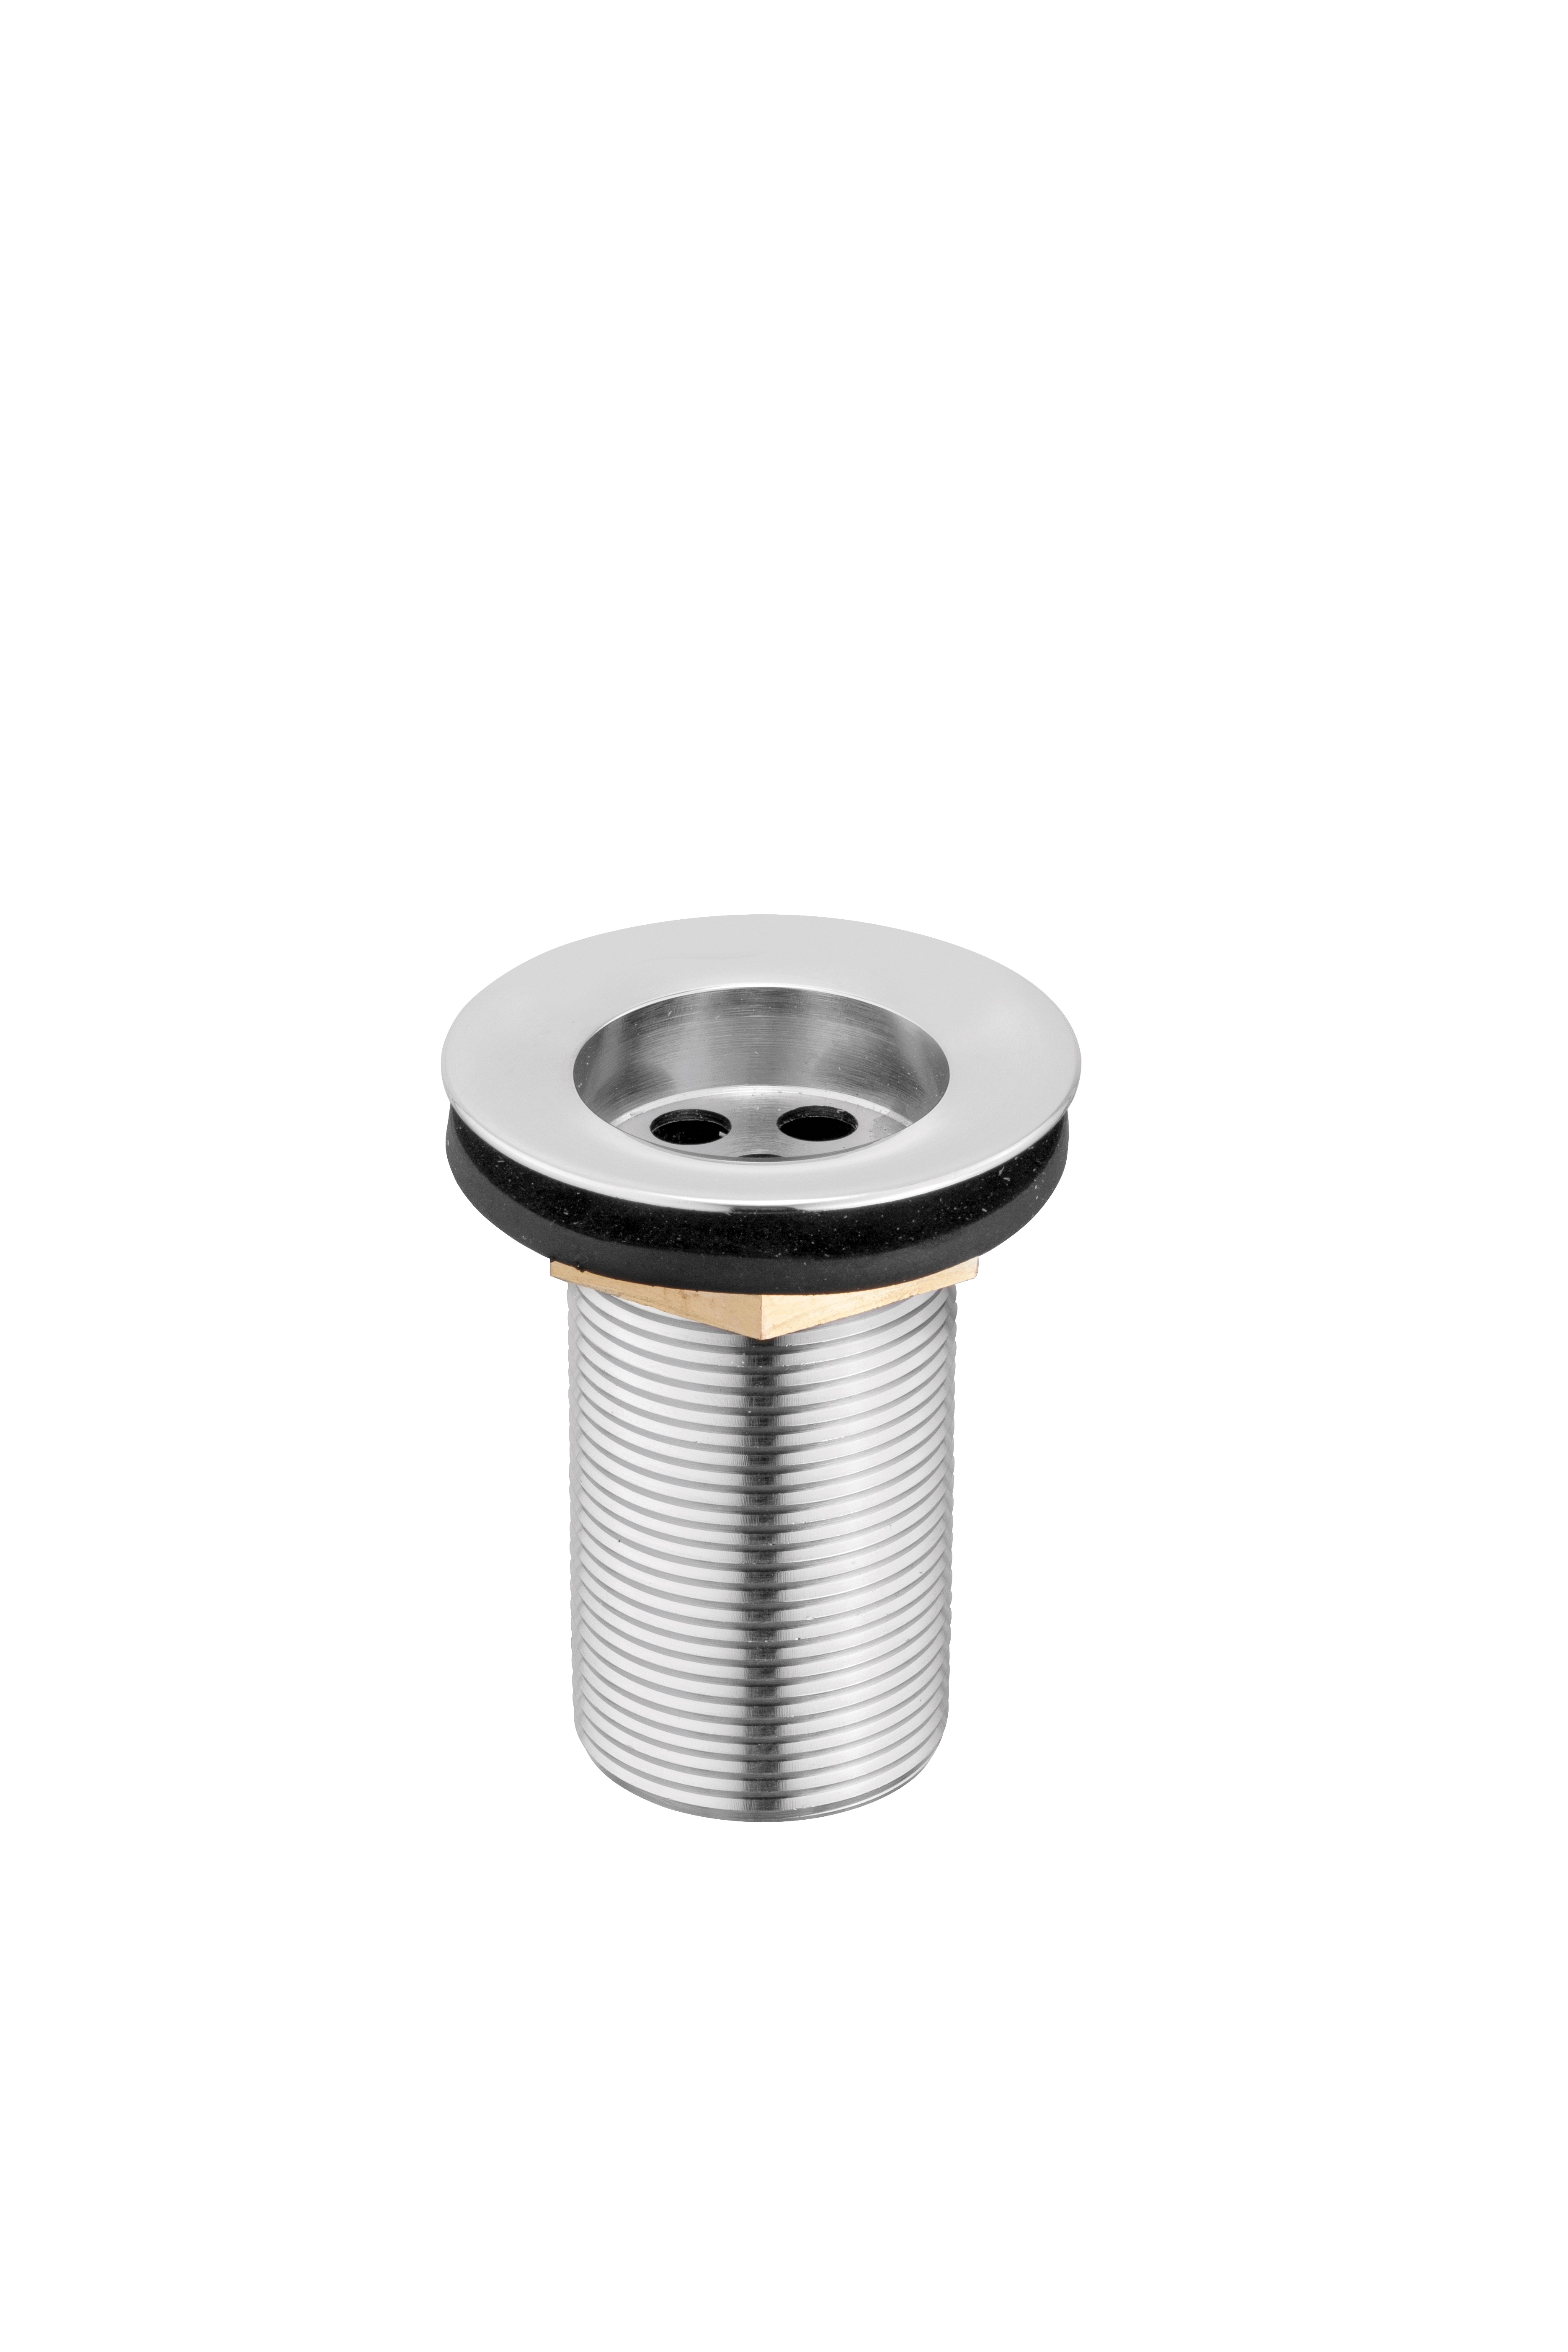 Waste Coupling 32mm (Full Thread)